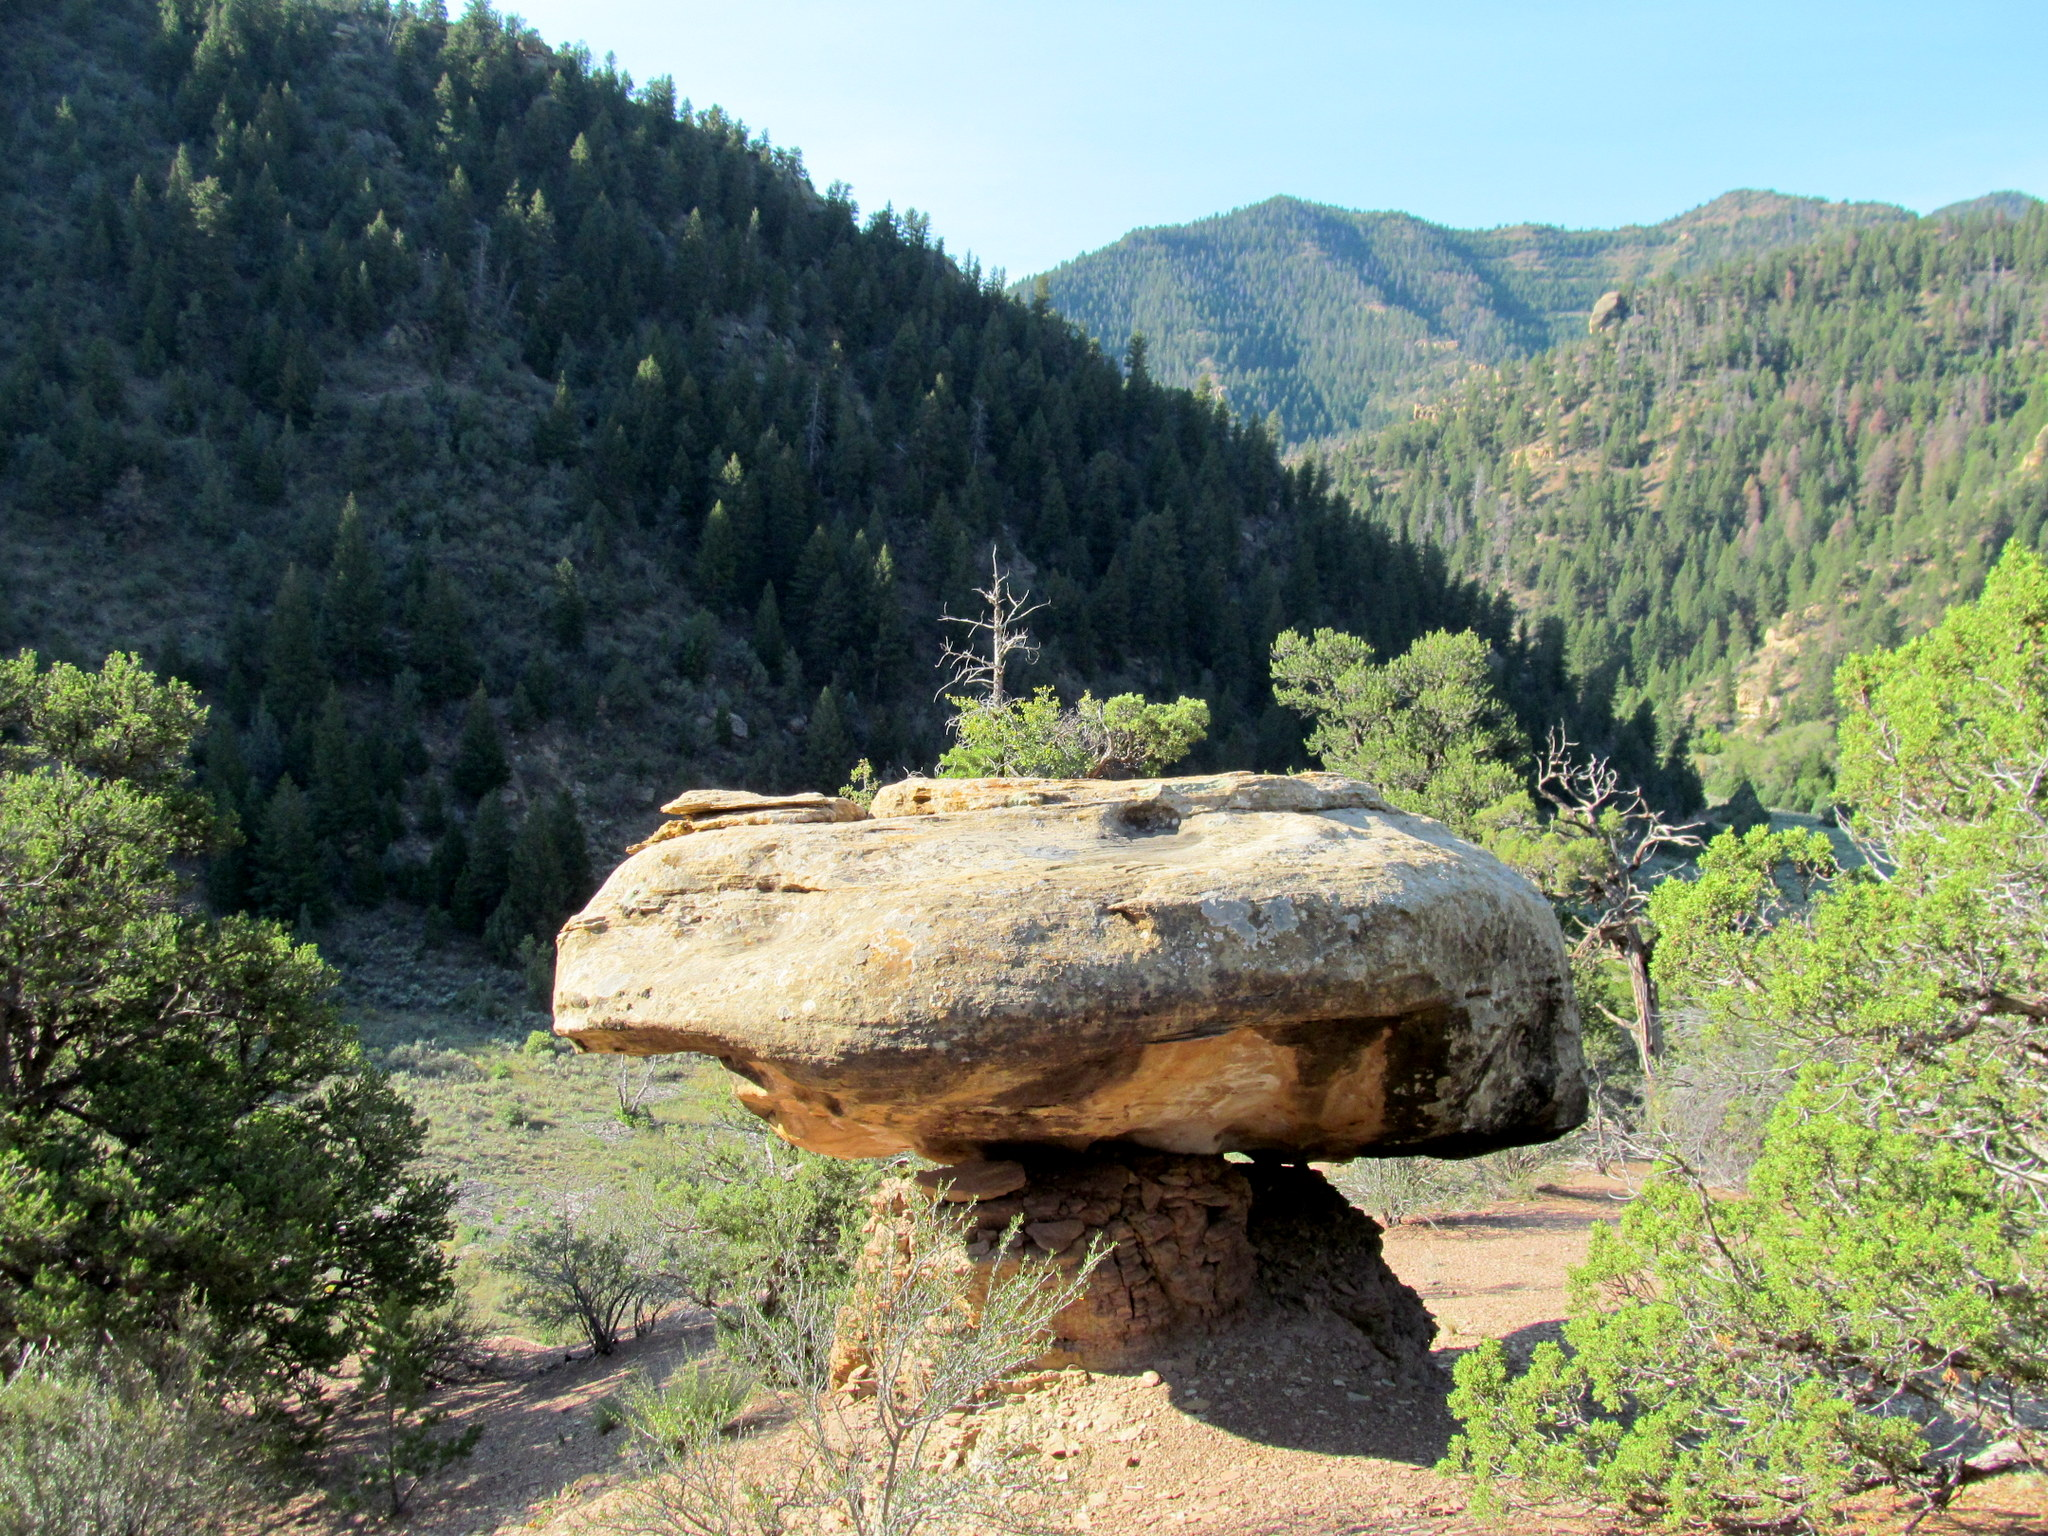 Photo: Boulder on a pedestal